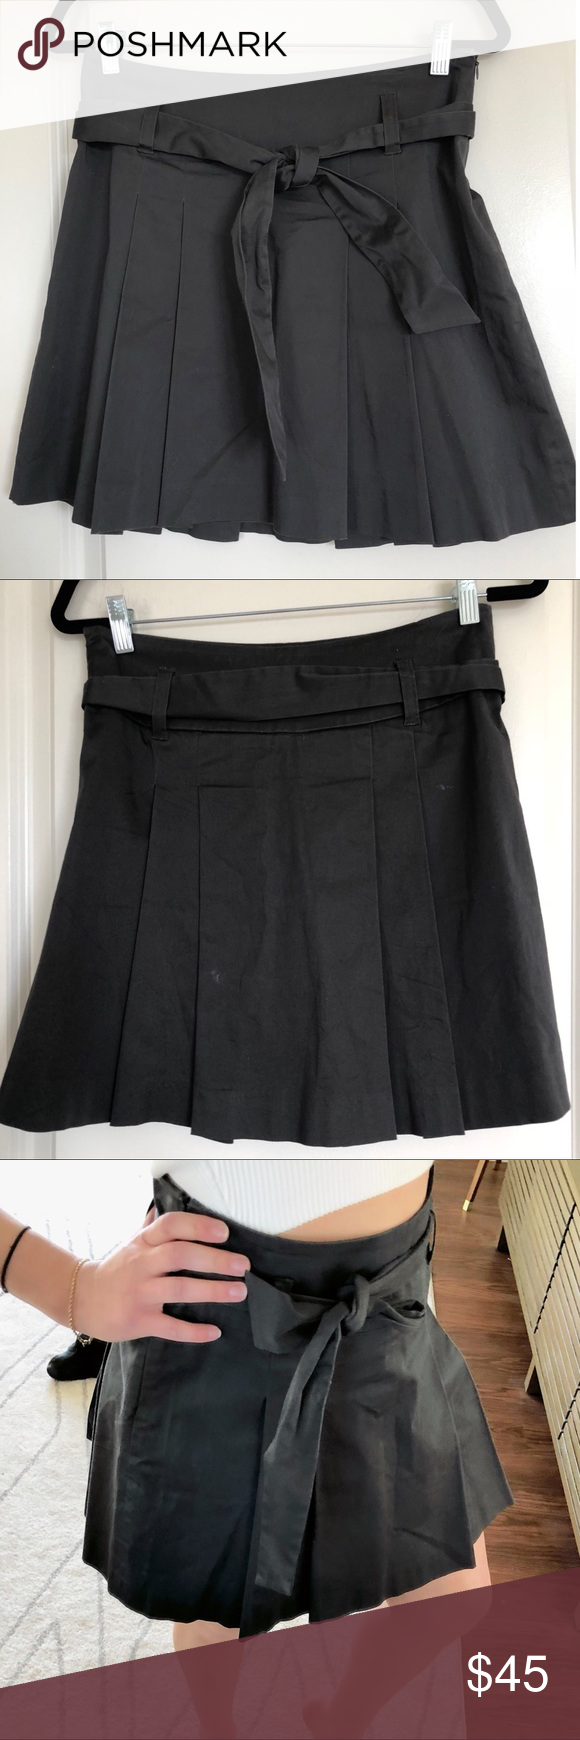 9f046c8546 KOOKAI Grey Pleated Mini Skirt 36 M KOOKAI Grey Pleated Mini Skirt 36 M